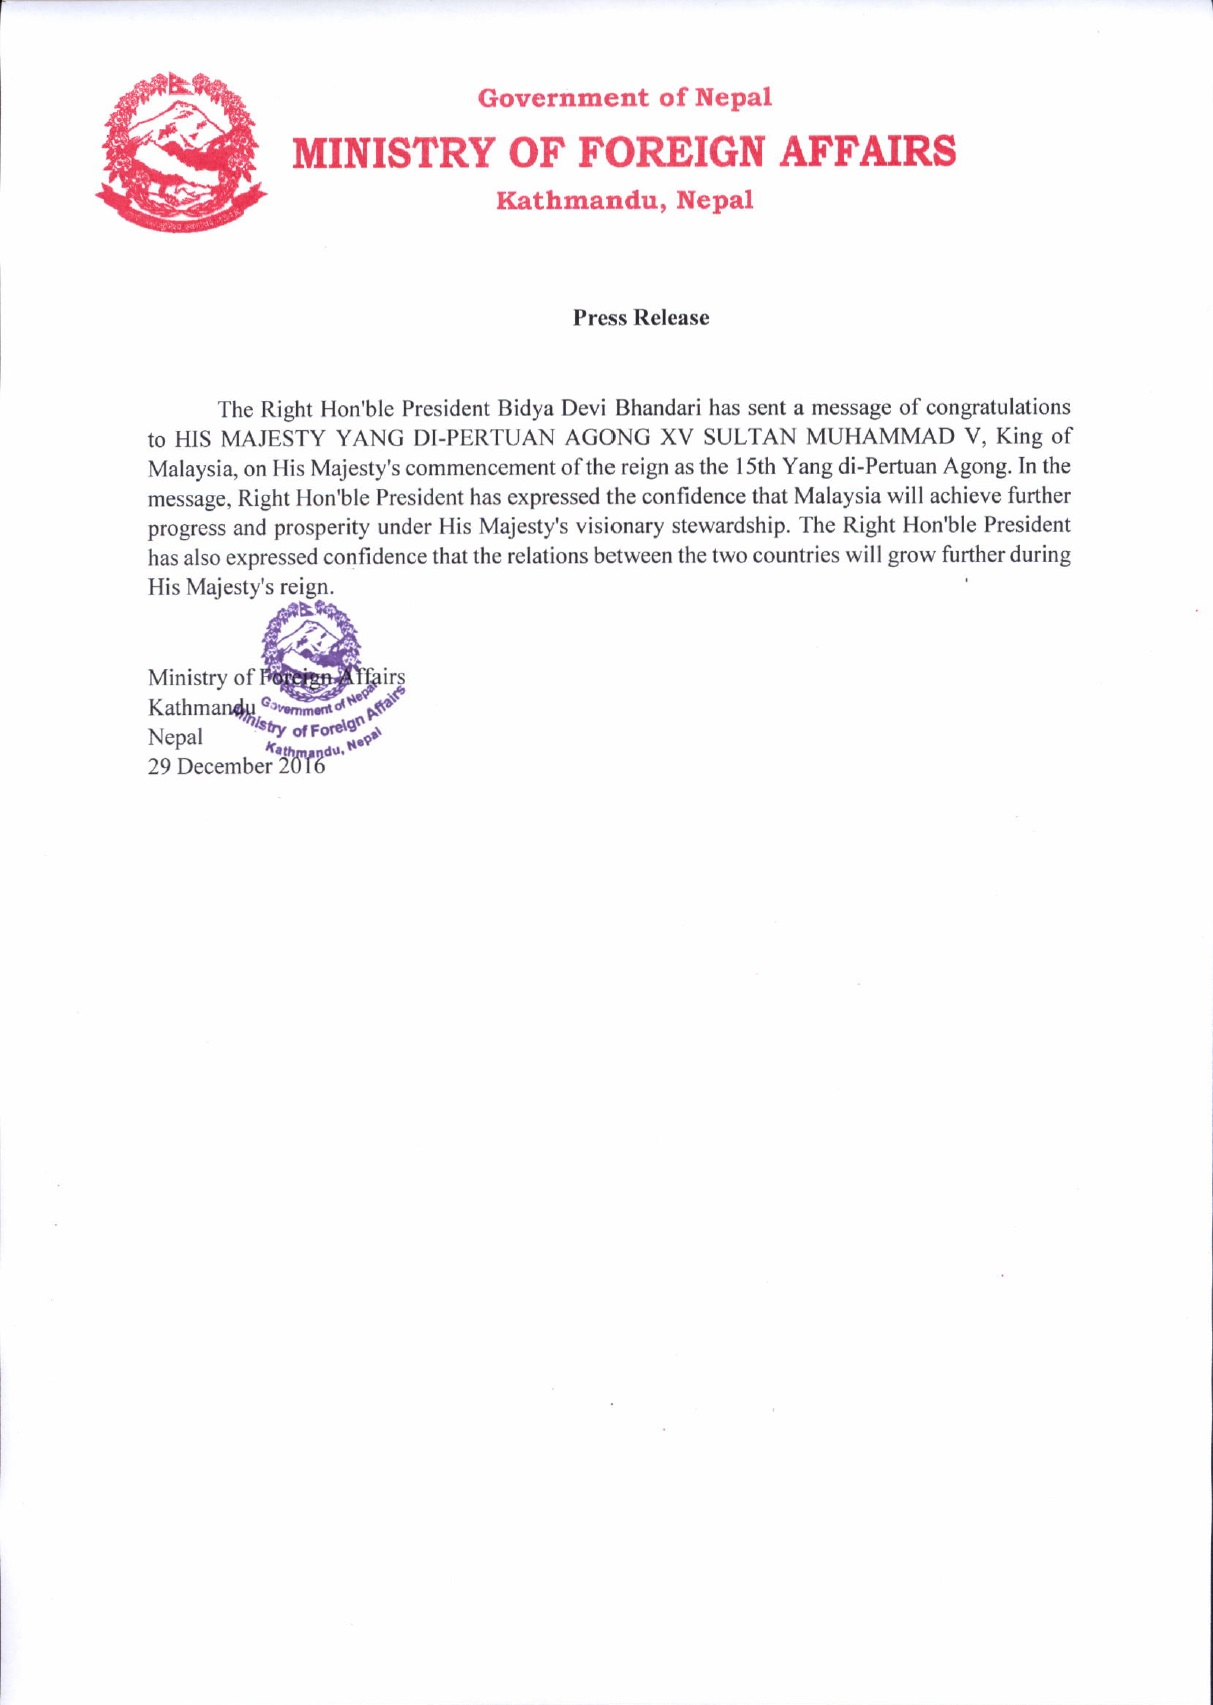 press-release-message-to-malaysian-king